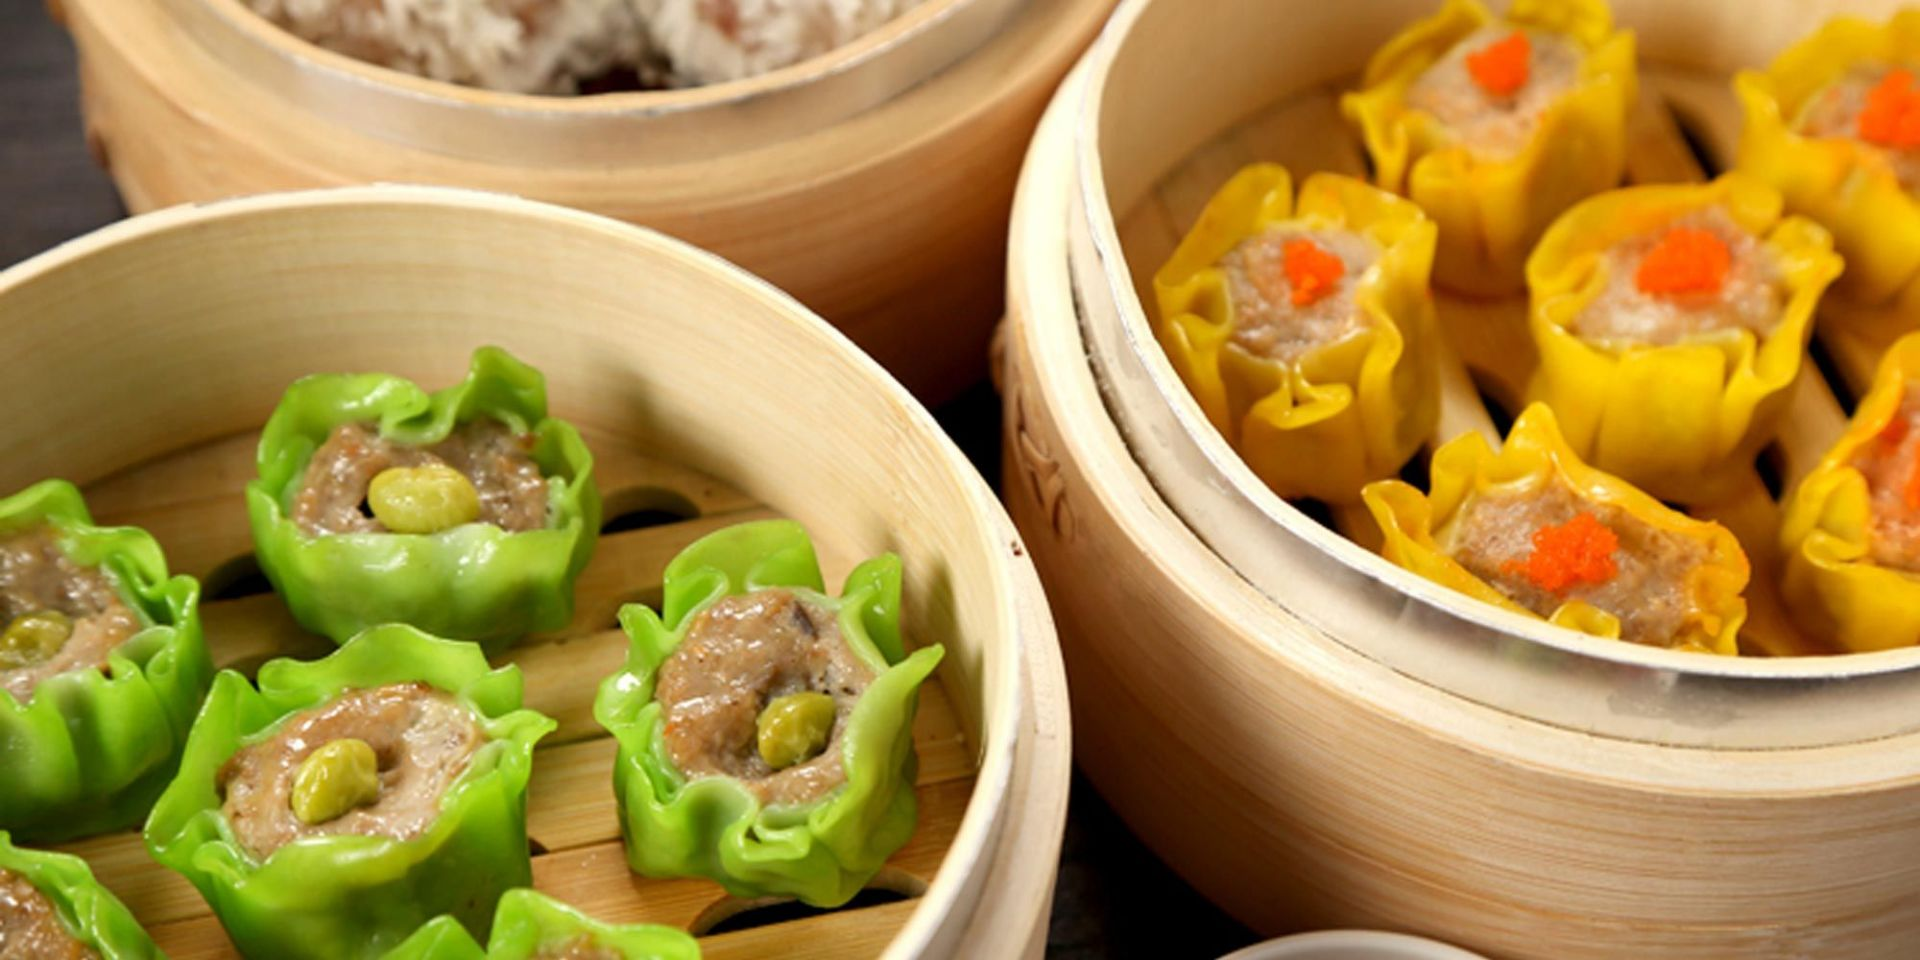 anko-machine-dont-underestimate-the-popularity-of-shumai